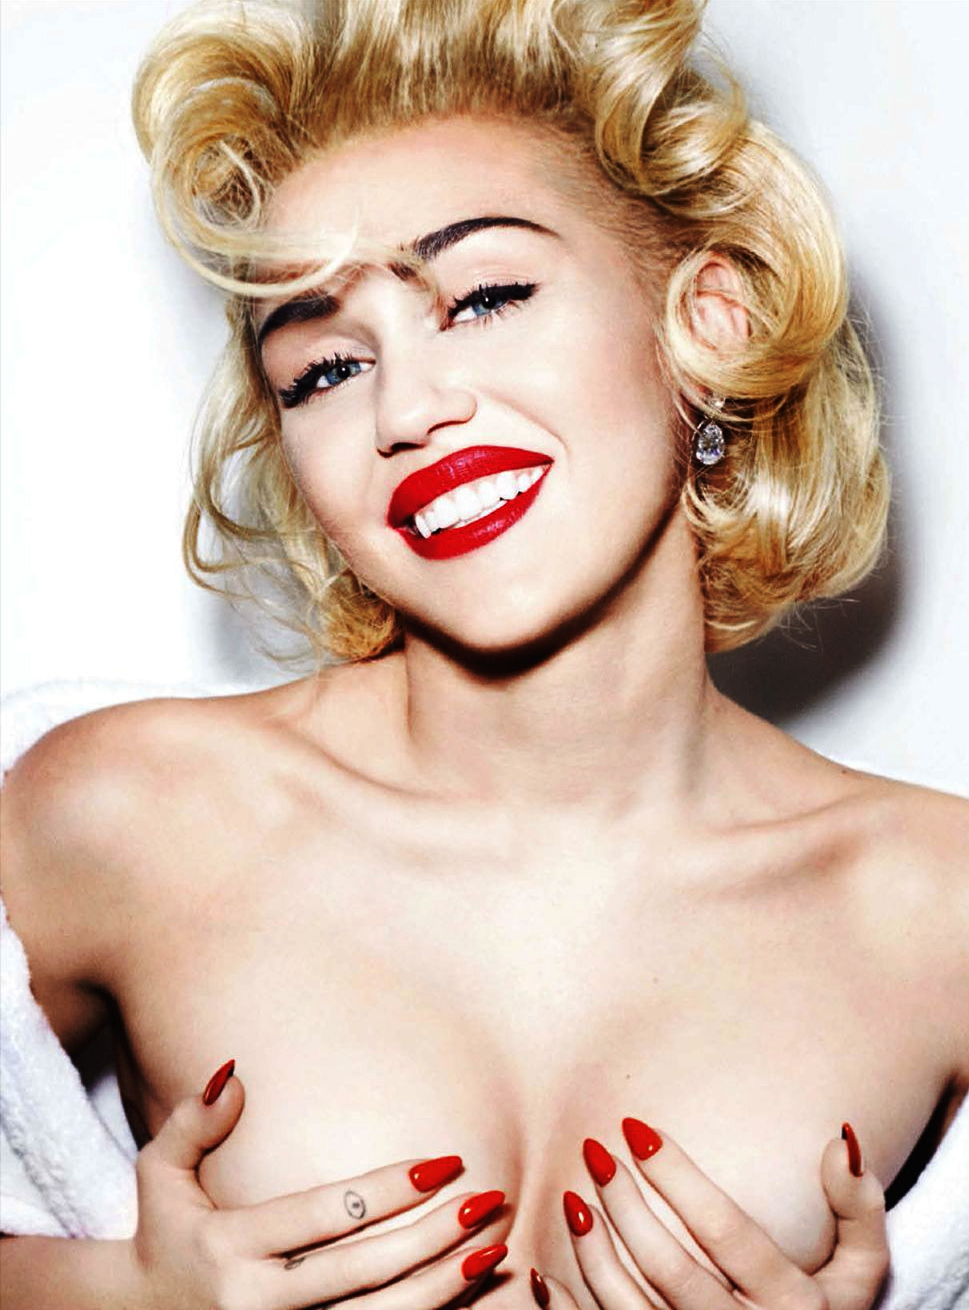 MILEY CYRUS NAKED IN VOGUE